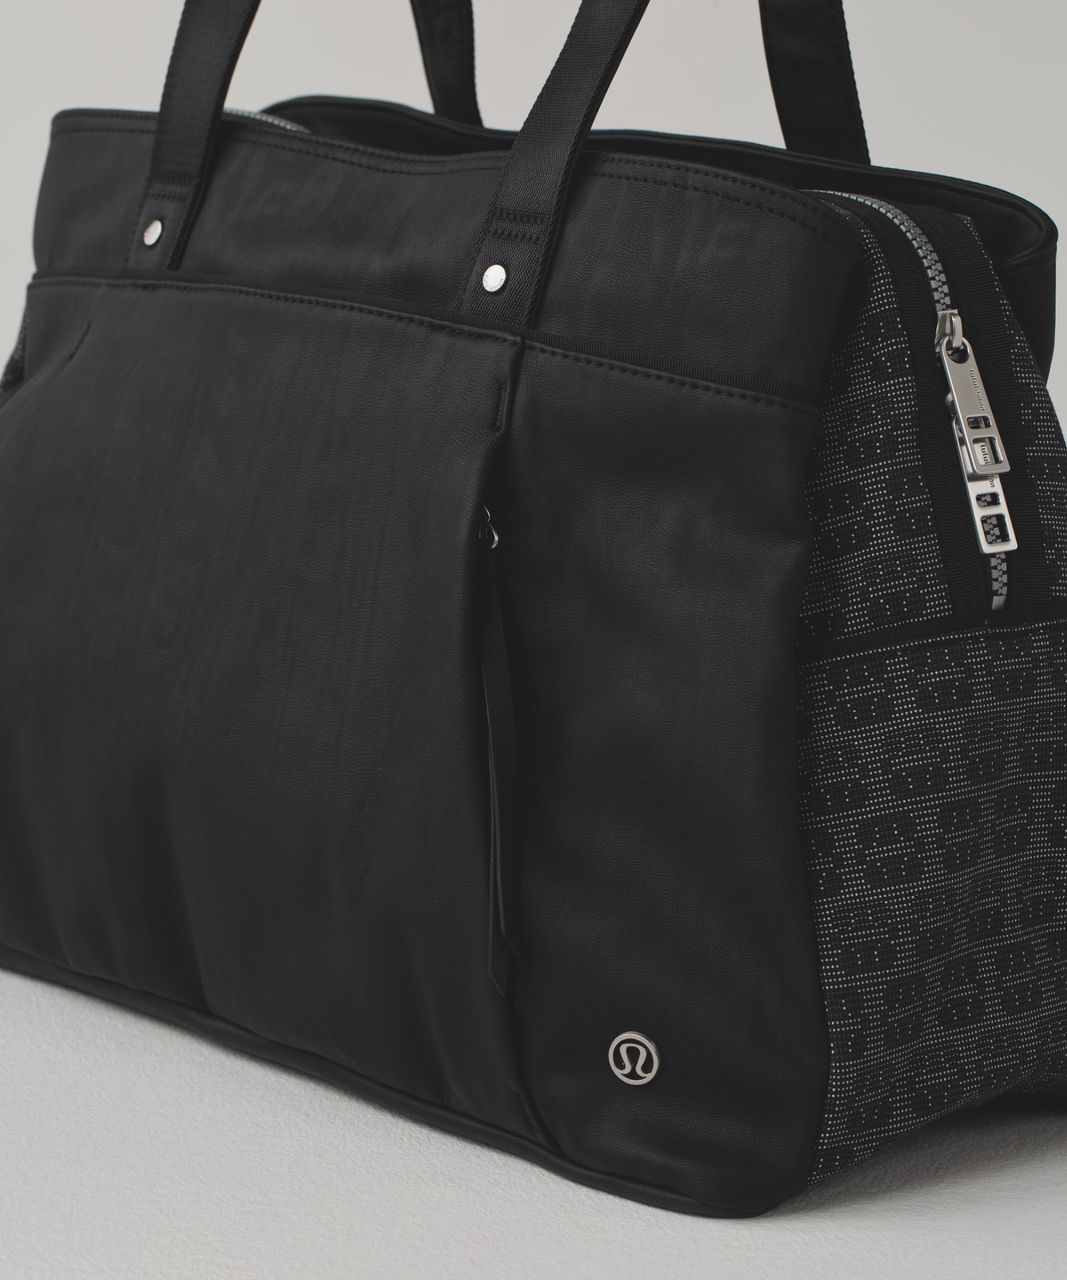 Lululemon Om The Day Bag Reflective Black Animal